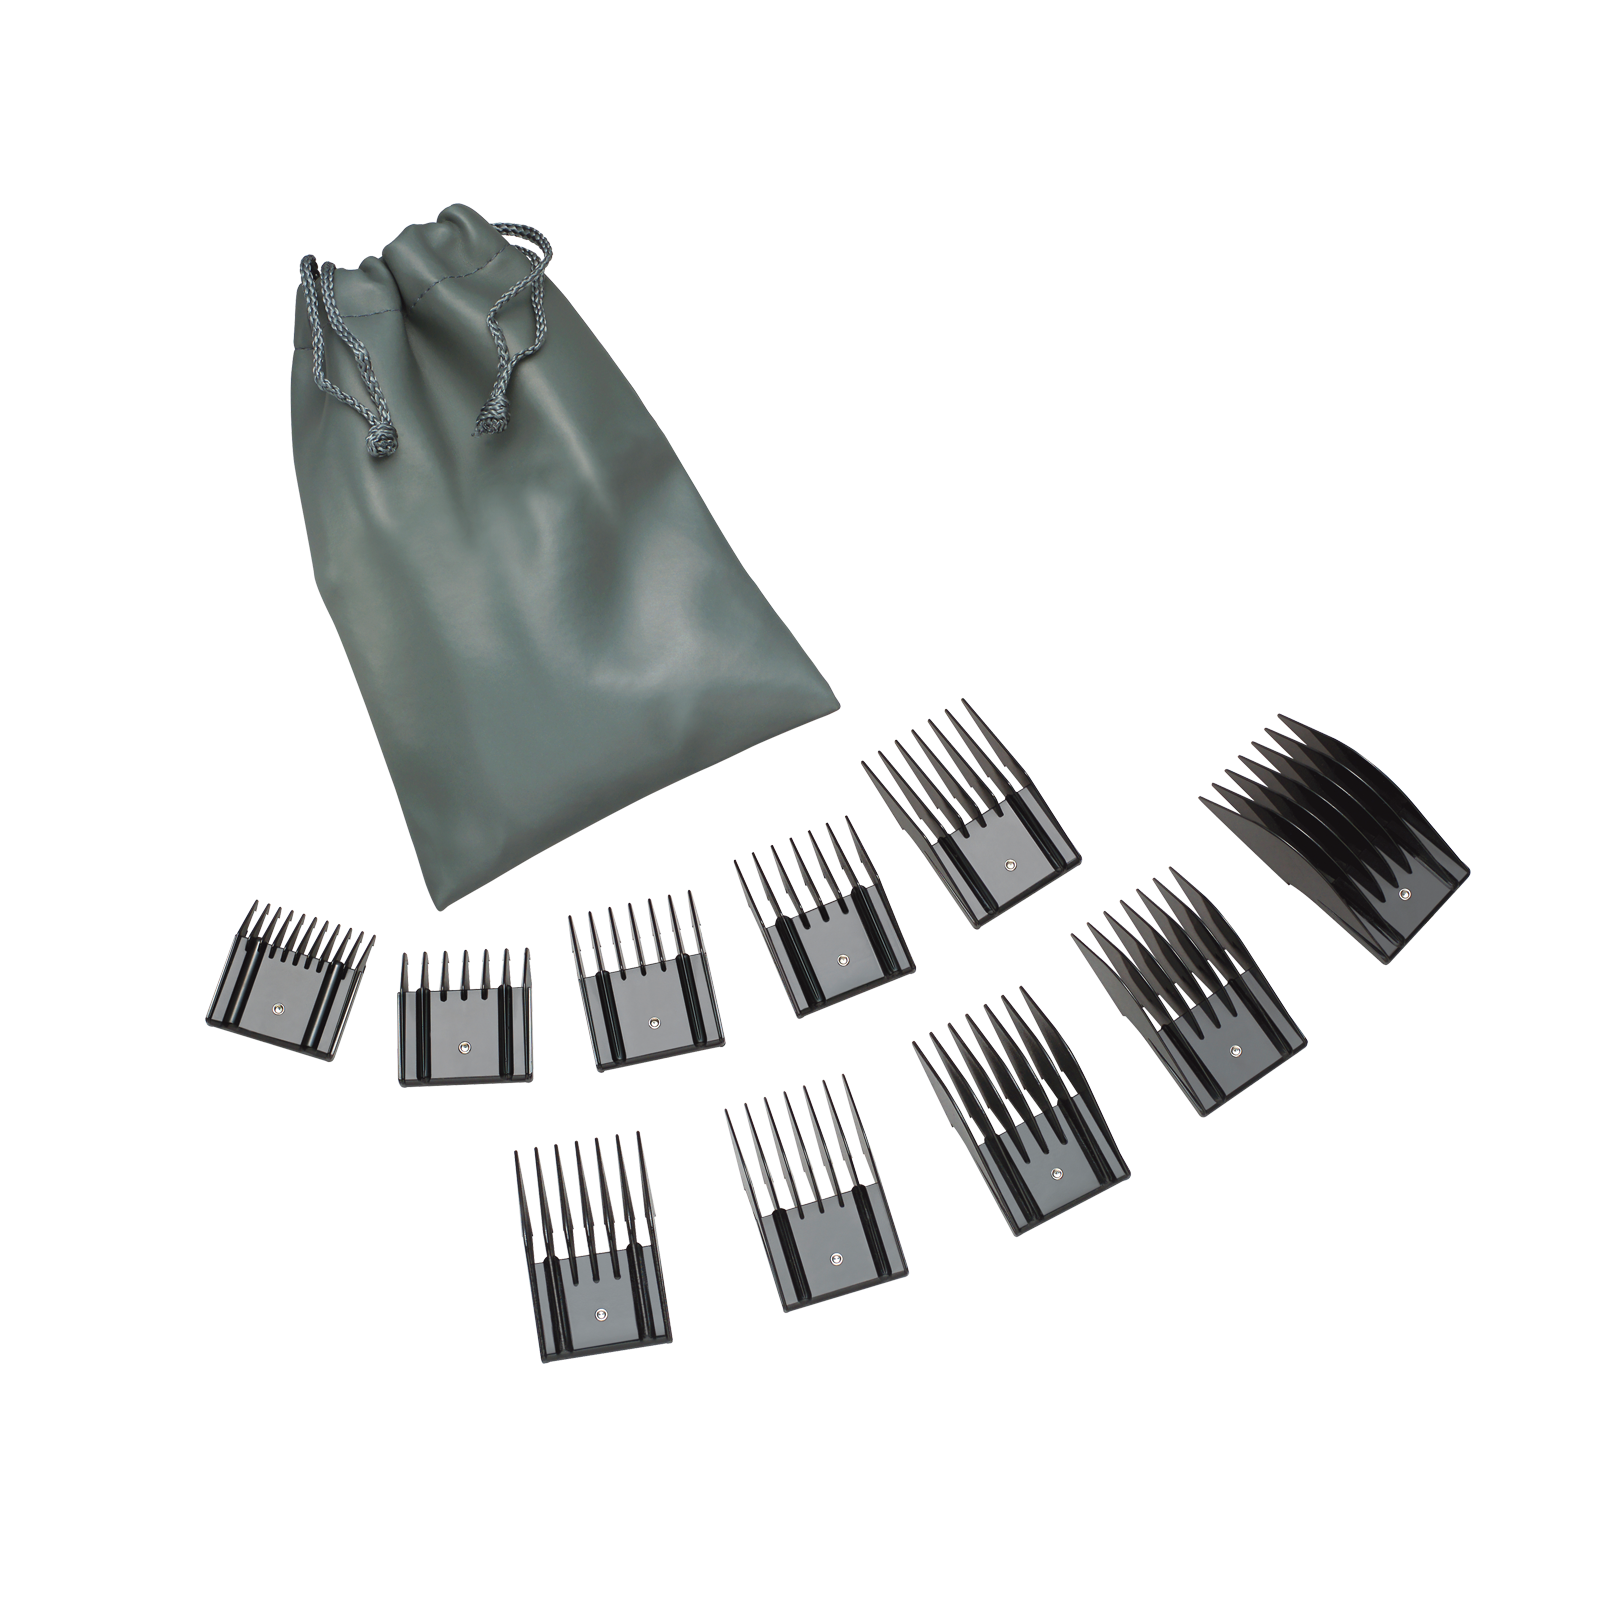 Universal Combs - 10 Piece Set with Storage Pouch